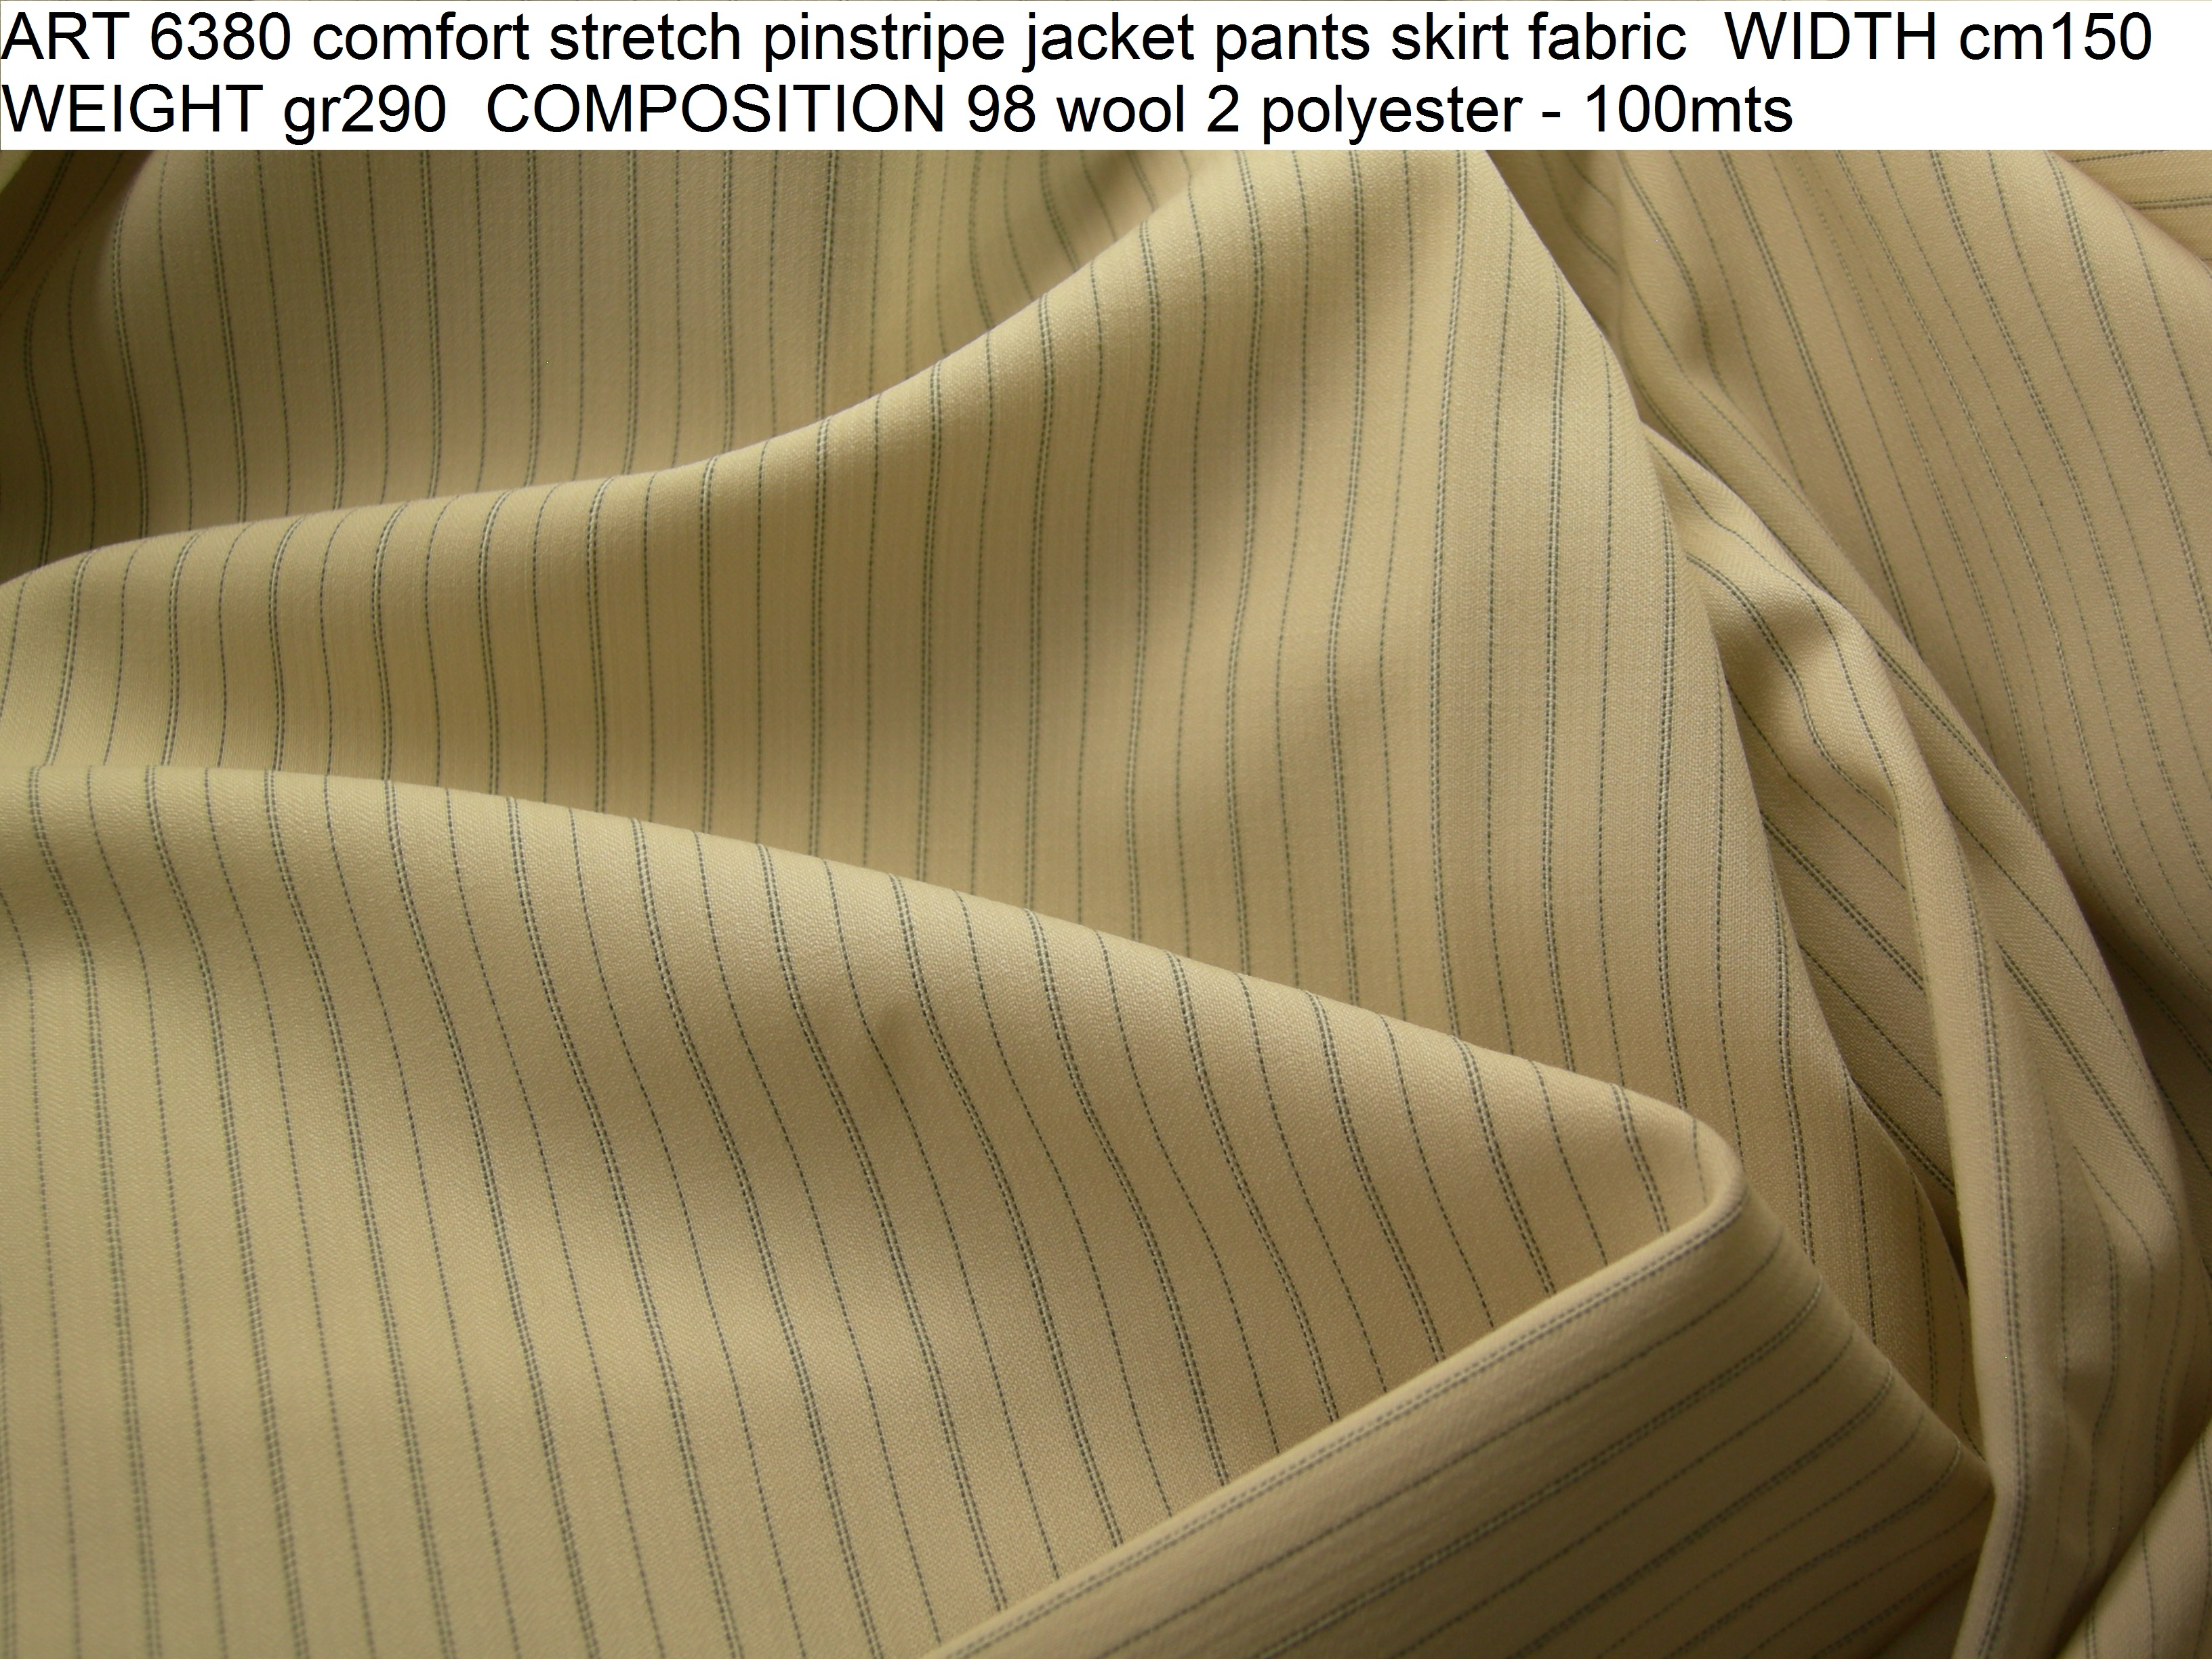 ART 6380 comfort stretch pinstripe jacket pants skirt fabric WIDTH cm150 WEIGHT gr290 COMPOSITION 98 wool 2 polyester - 100mts